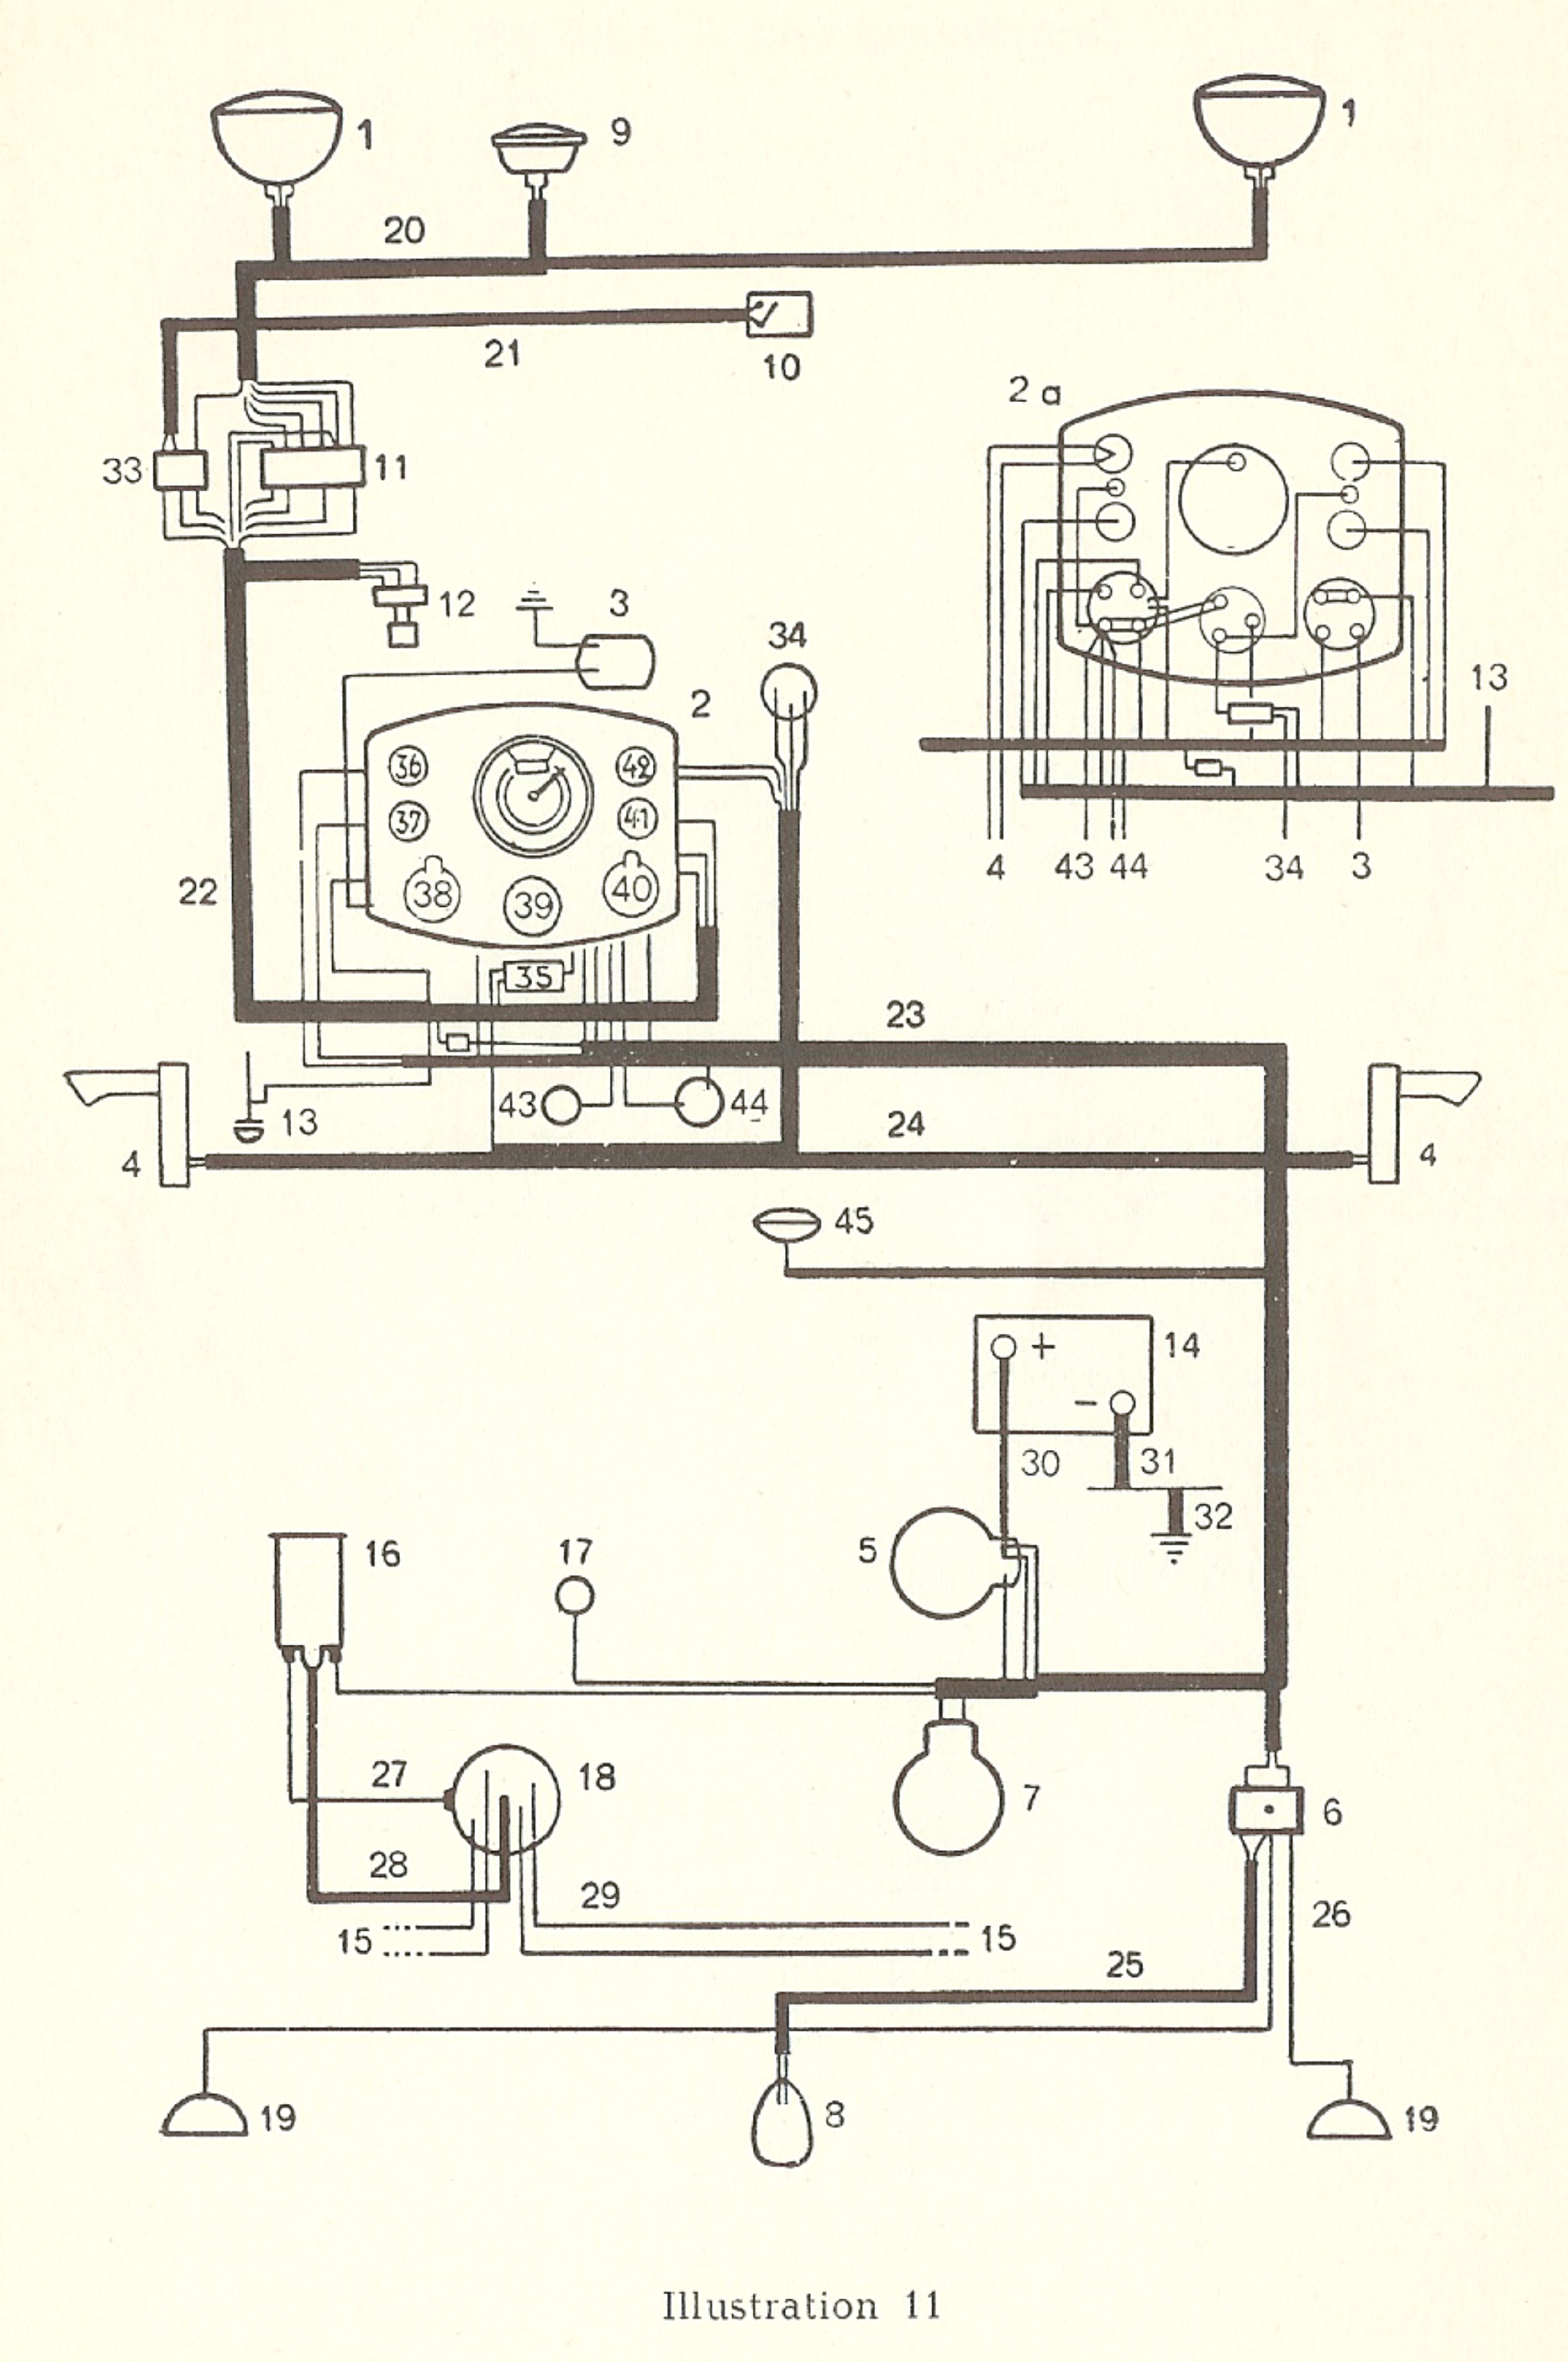 1968 Vw Turn Signal Wiring Diagram Wire Center Brake Thesamba Com Type 1 Diagrams Rh Gm Switch And